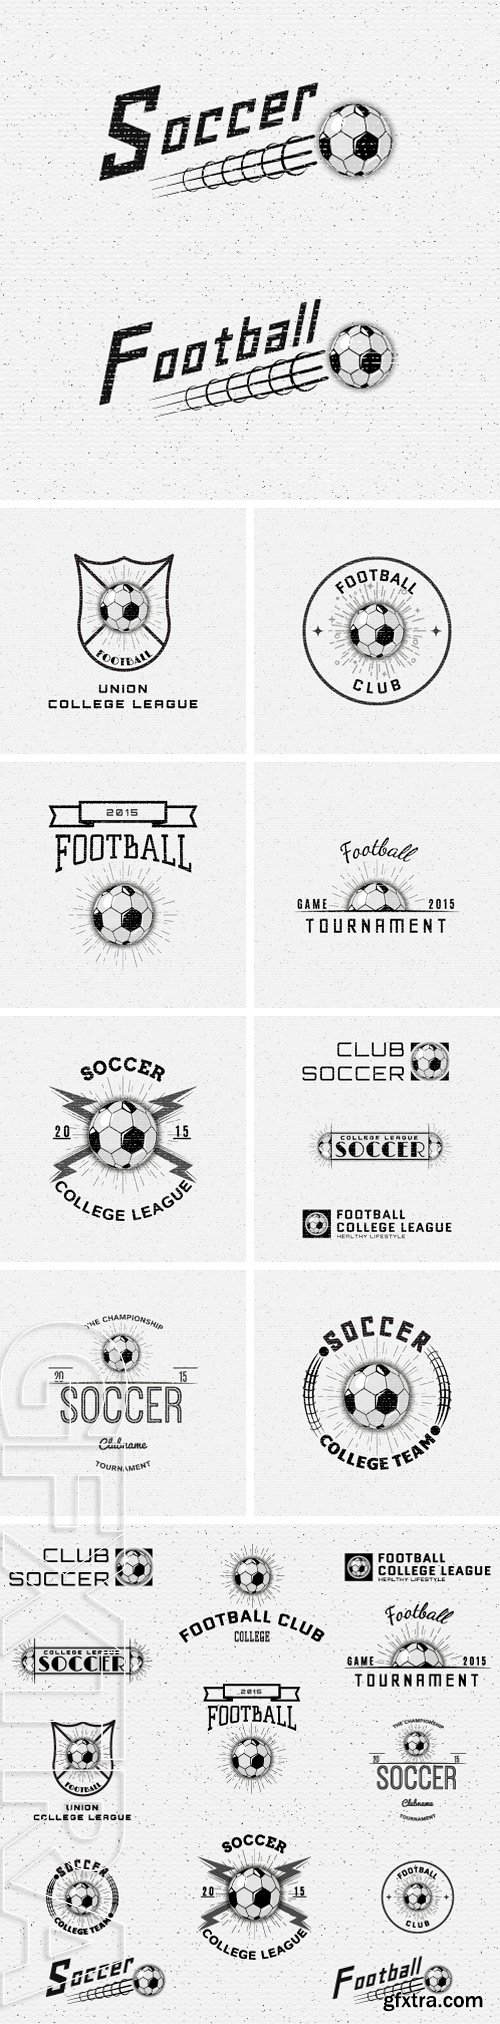 Stock Vectors - Soccer badges logos and labels can be used for design, presentations, brochures, flyers, sports equipment, corporate identity, sales